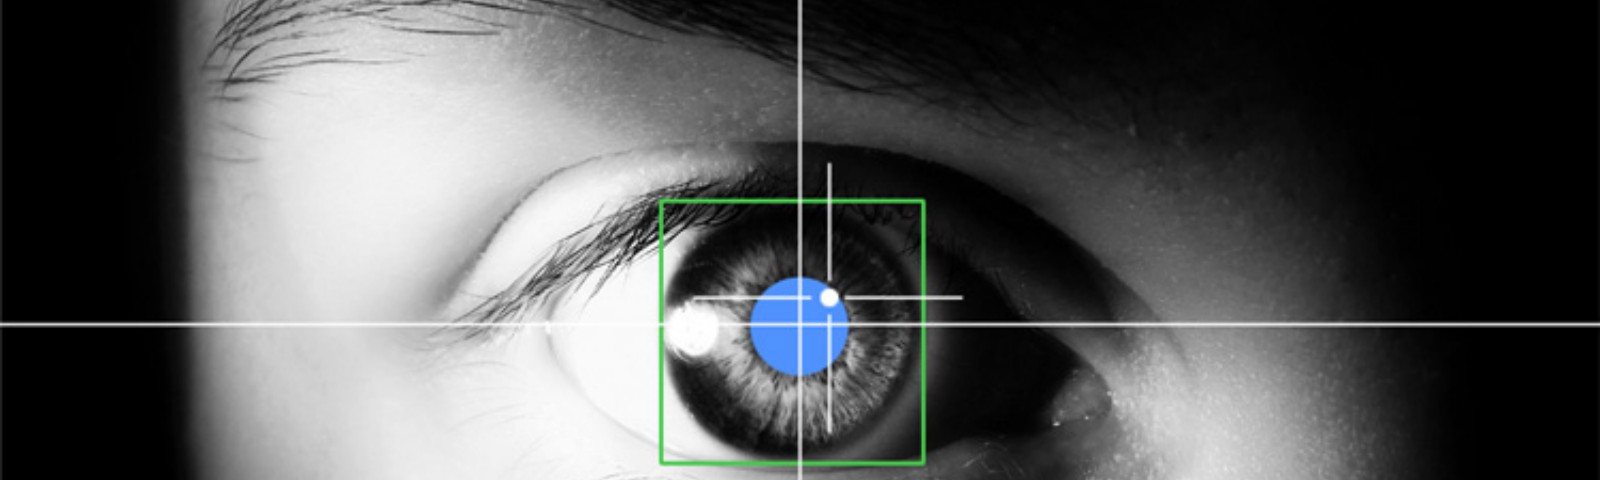 Make an Eye tracking and Face detection app as a beginner - By Pradyuman